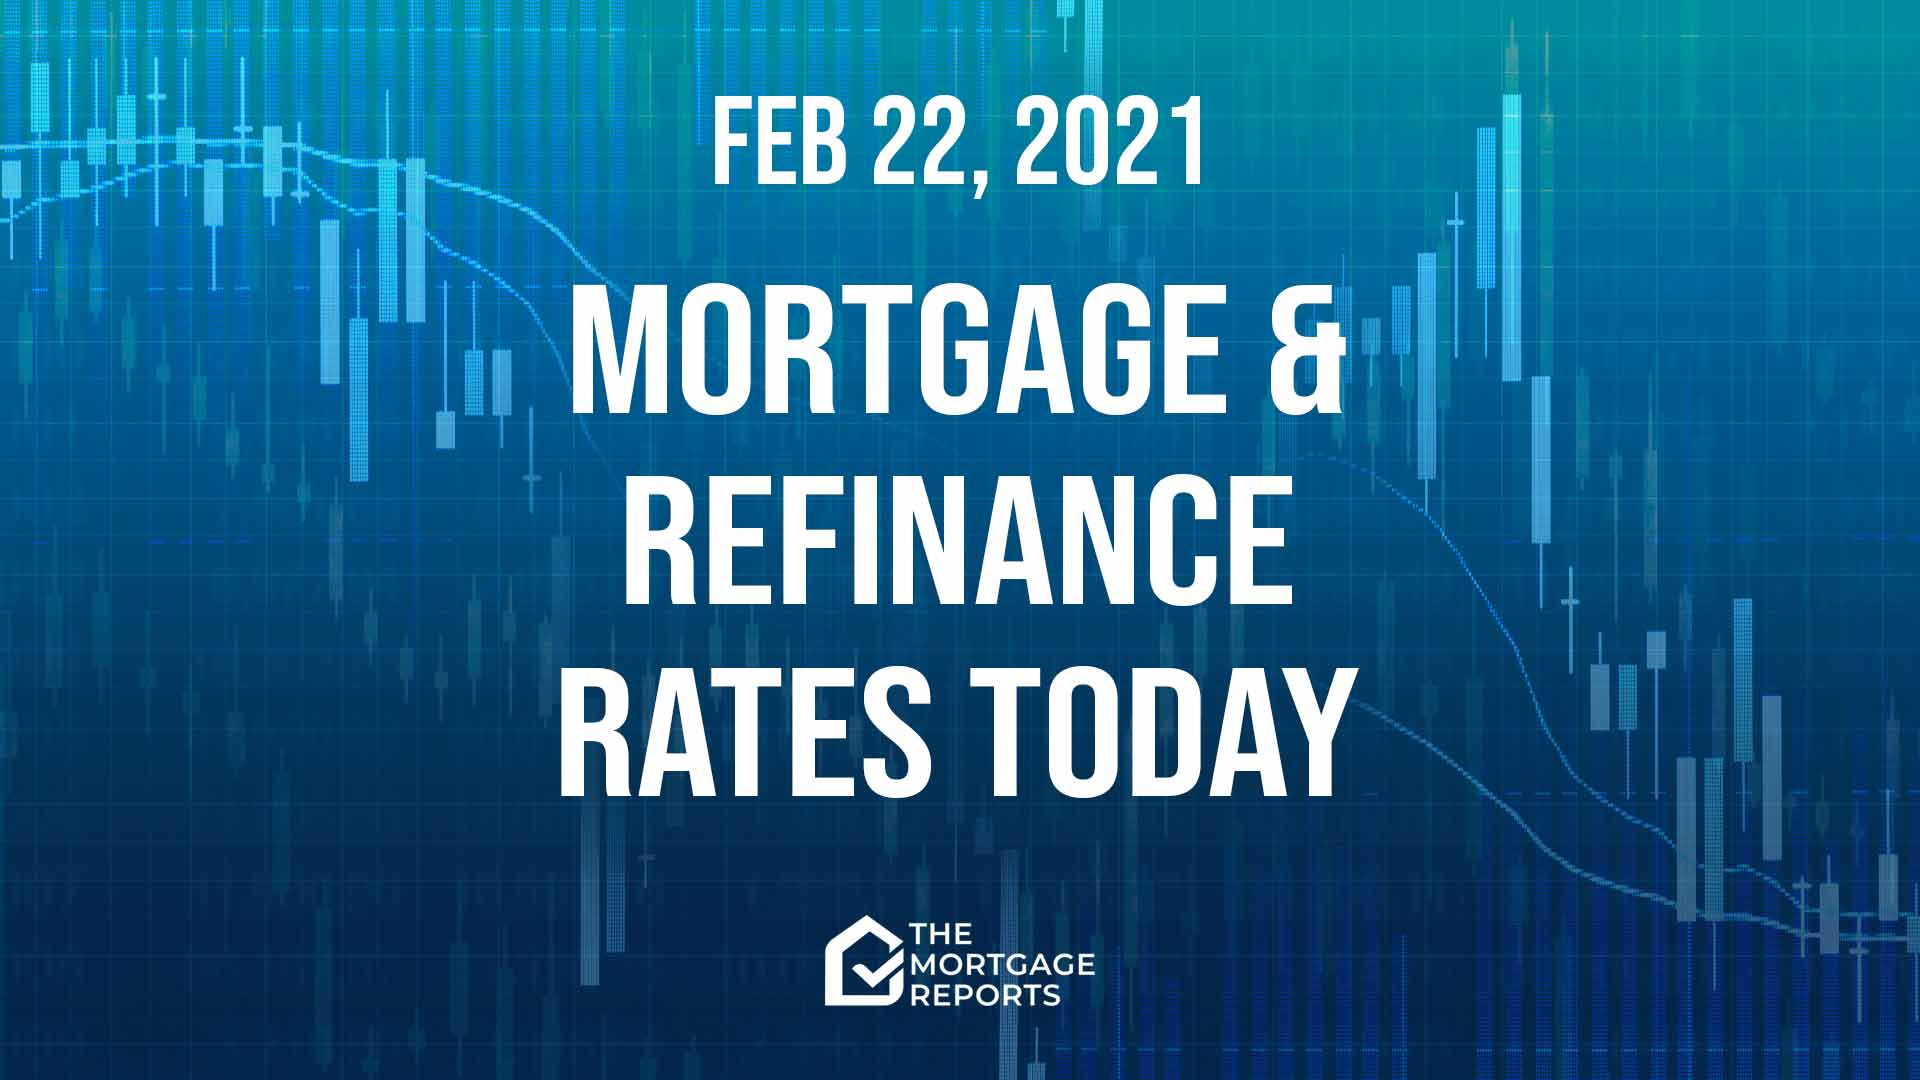 Mortgage and refinance rates today, February 22, 2021